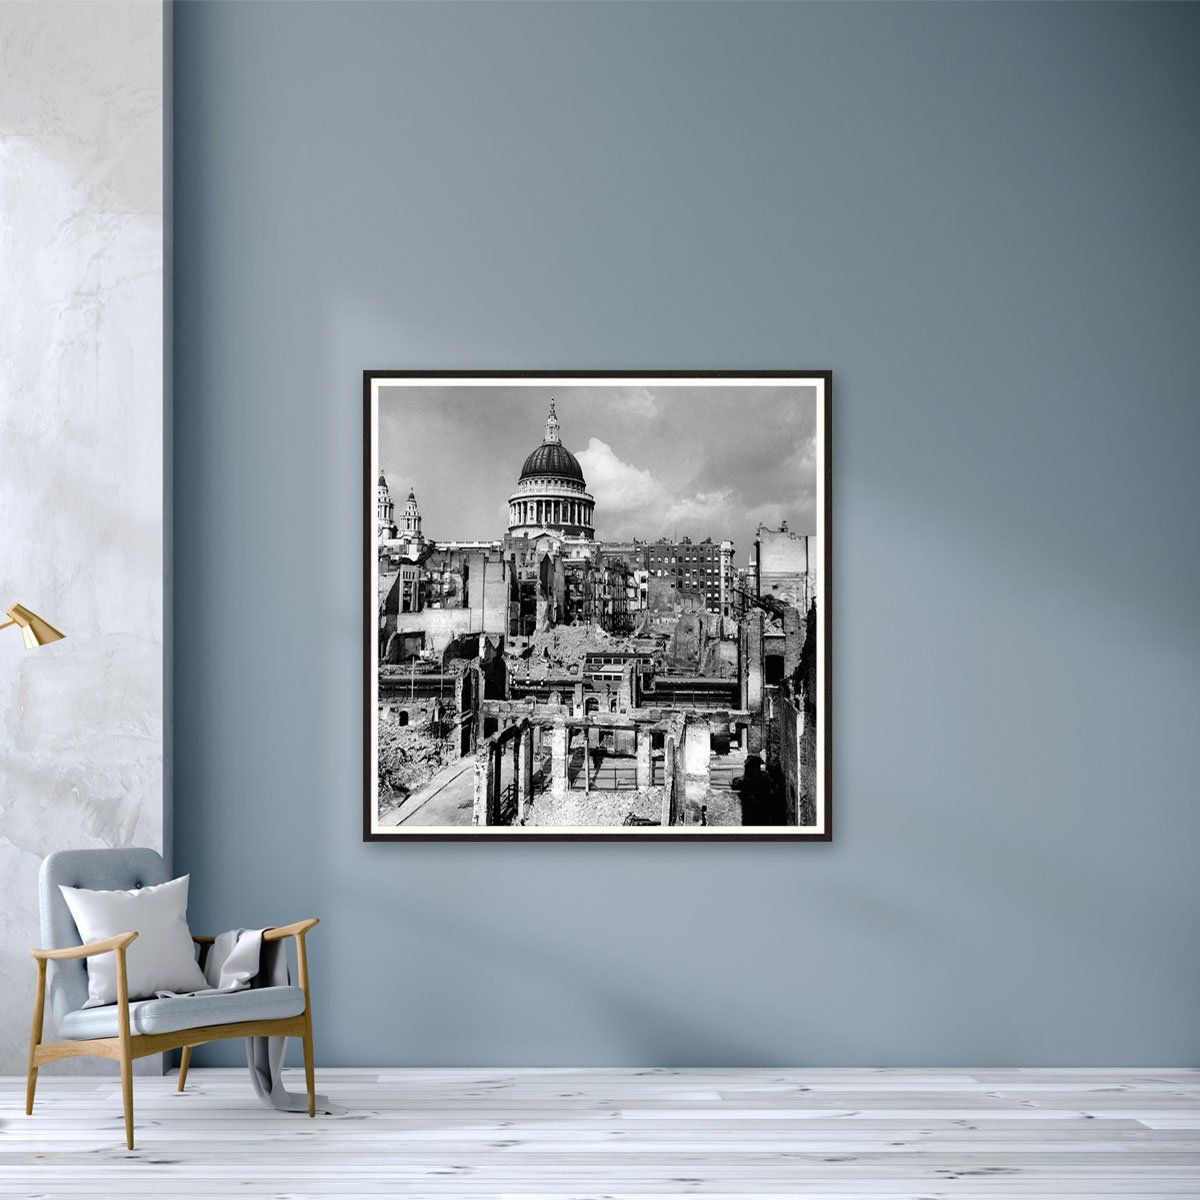 St. Pauls Cathedral stands proud by Frank Rust